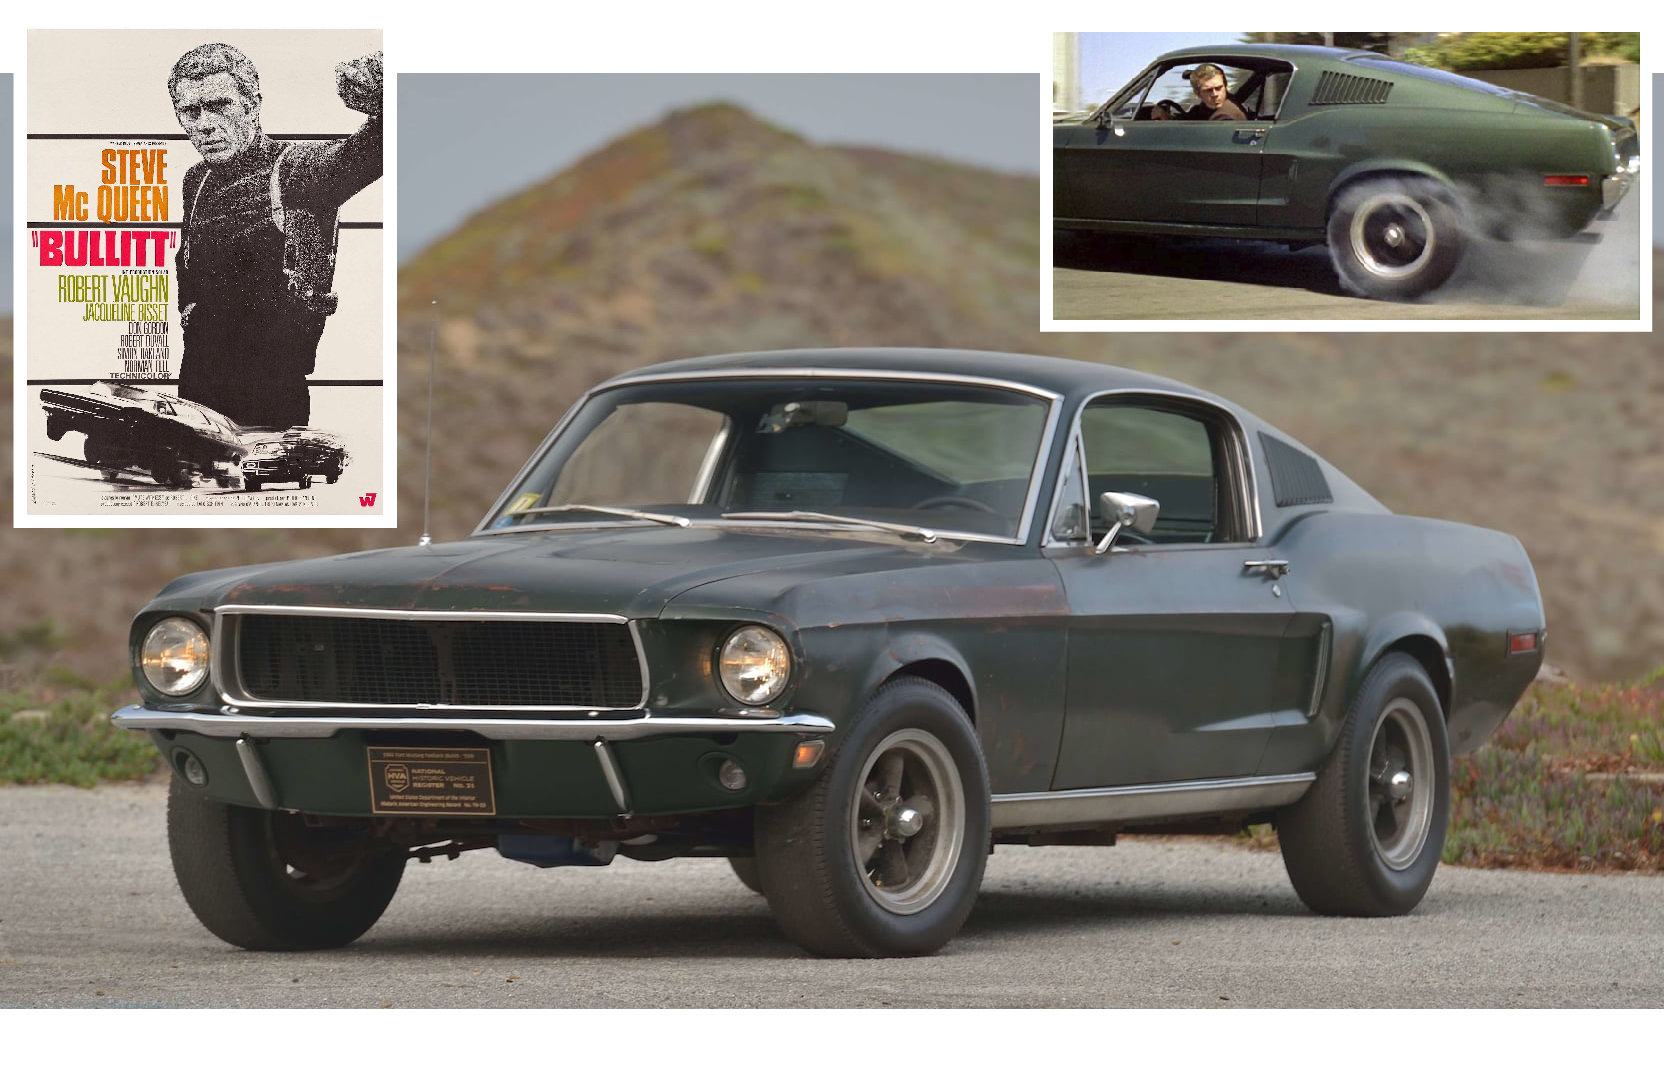 It's Time To Sell Your House - The Original Steve McQueen Bullitt Mustang Is For Sale